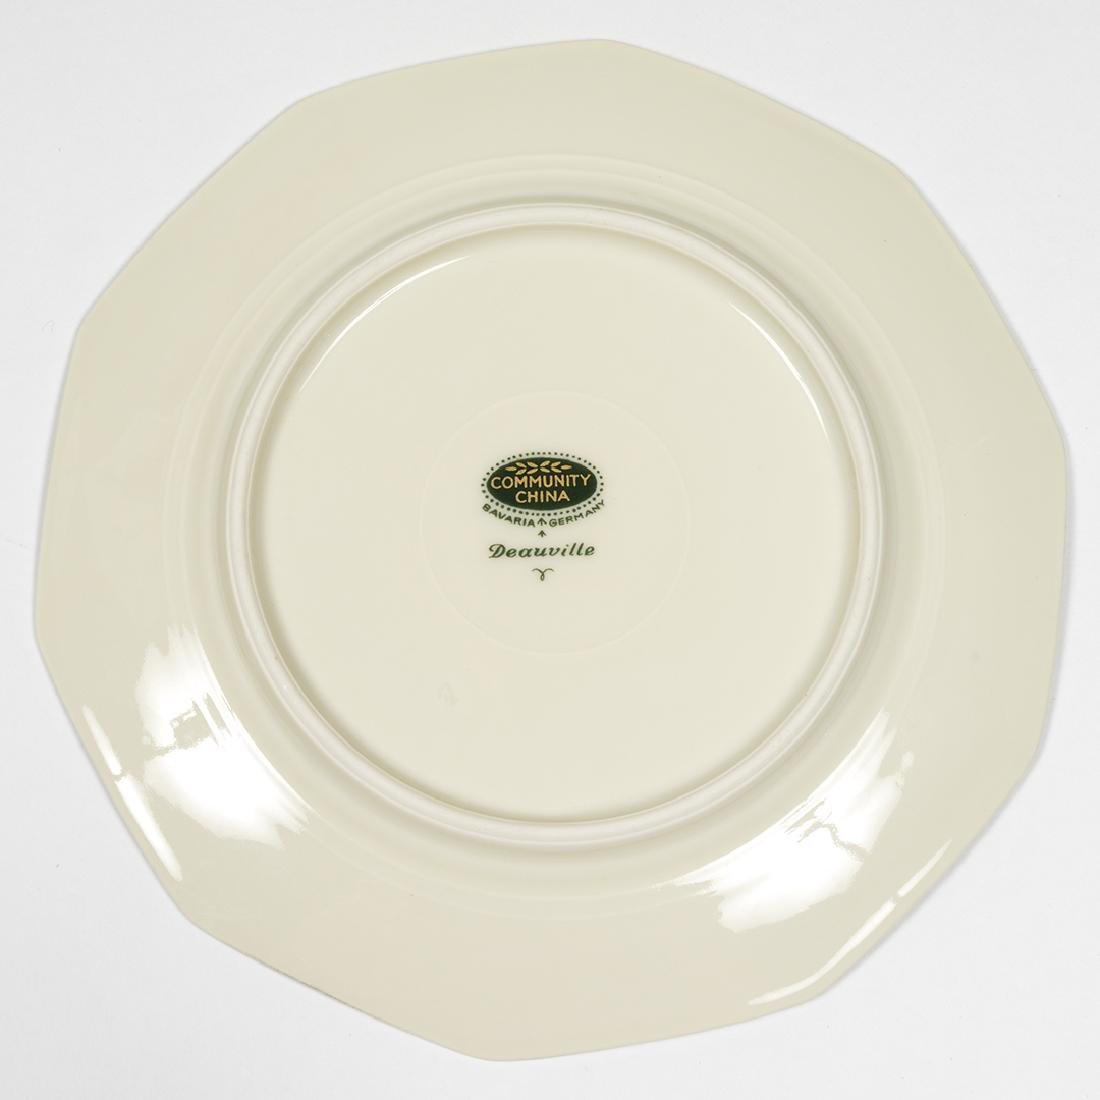 Community China Deauville Art Deco Dinnerware - 7